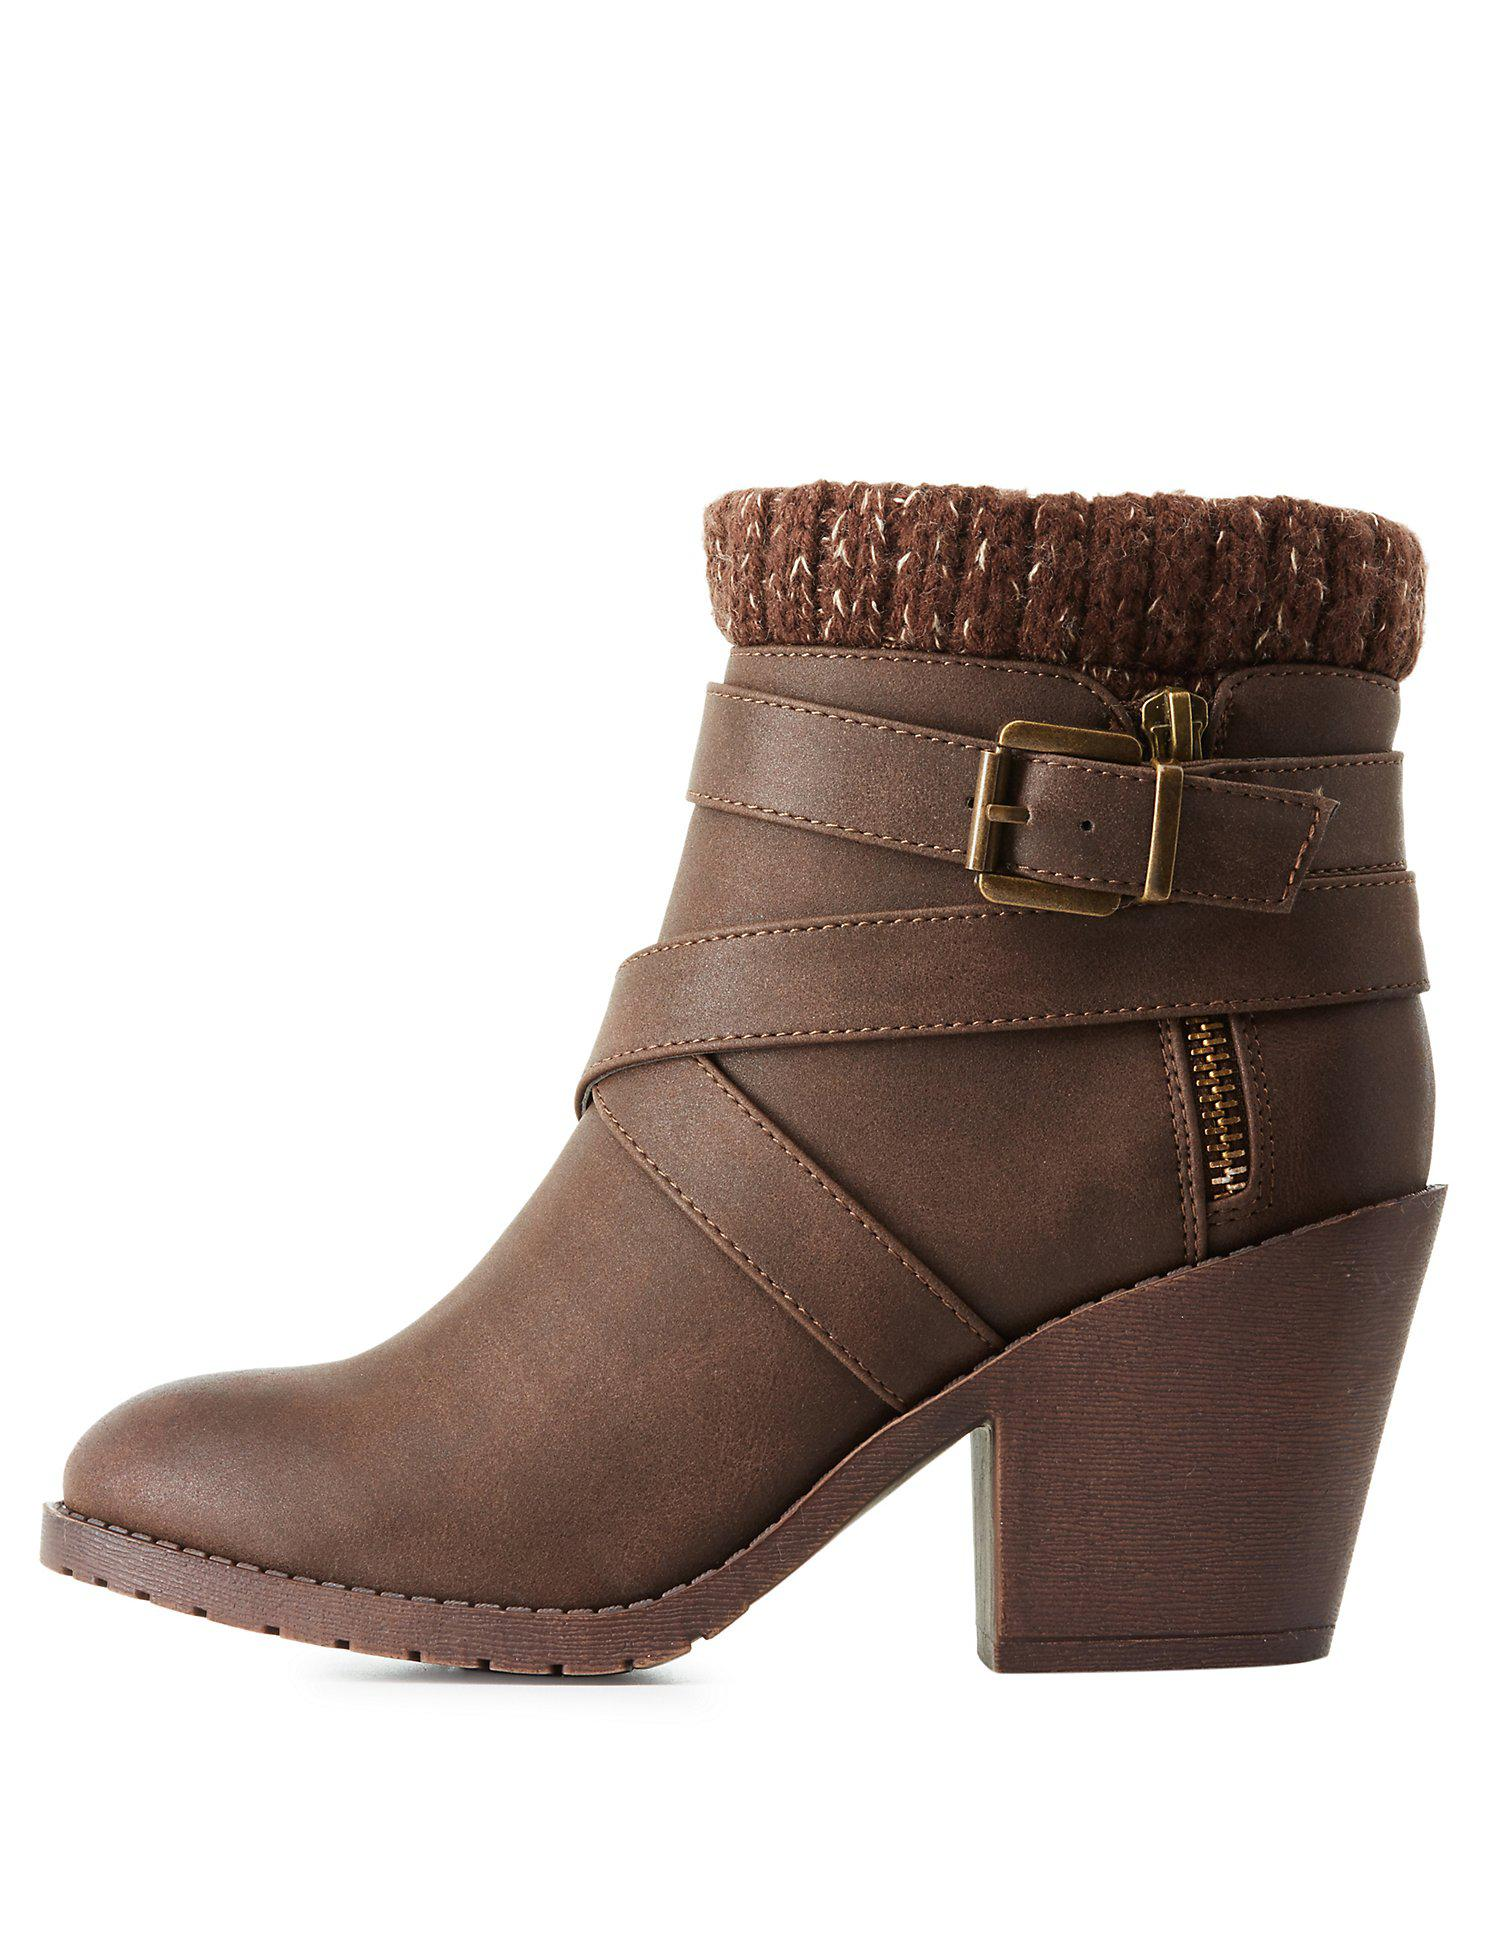 b6edf843994d Lyst - Charlotte Russe Knit-trim Ankle Booties in Brown